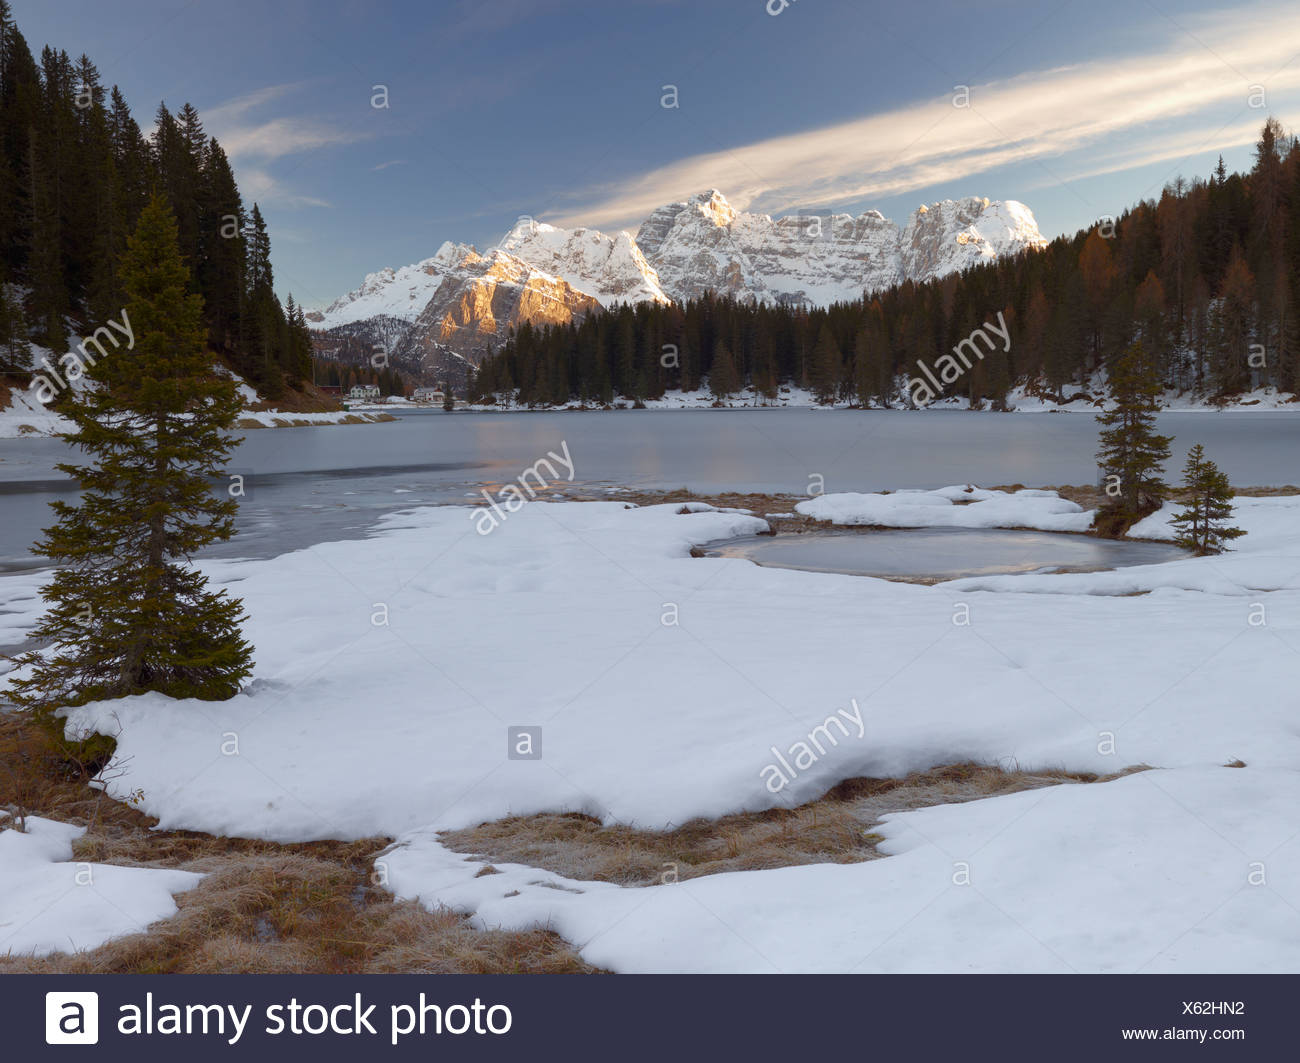 Lago Misurina, Misurina Lake at Sunrise, Belluno, Italy, Europe - Stock Image